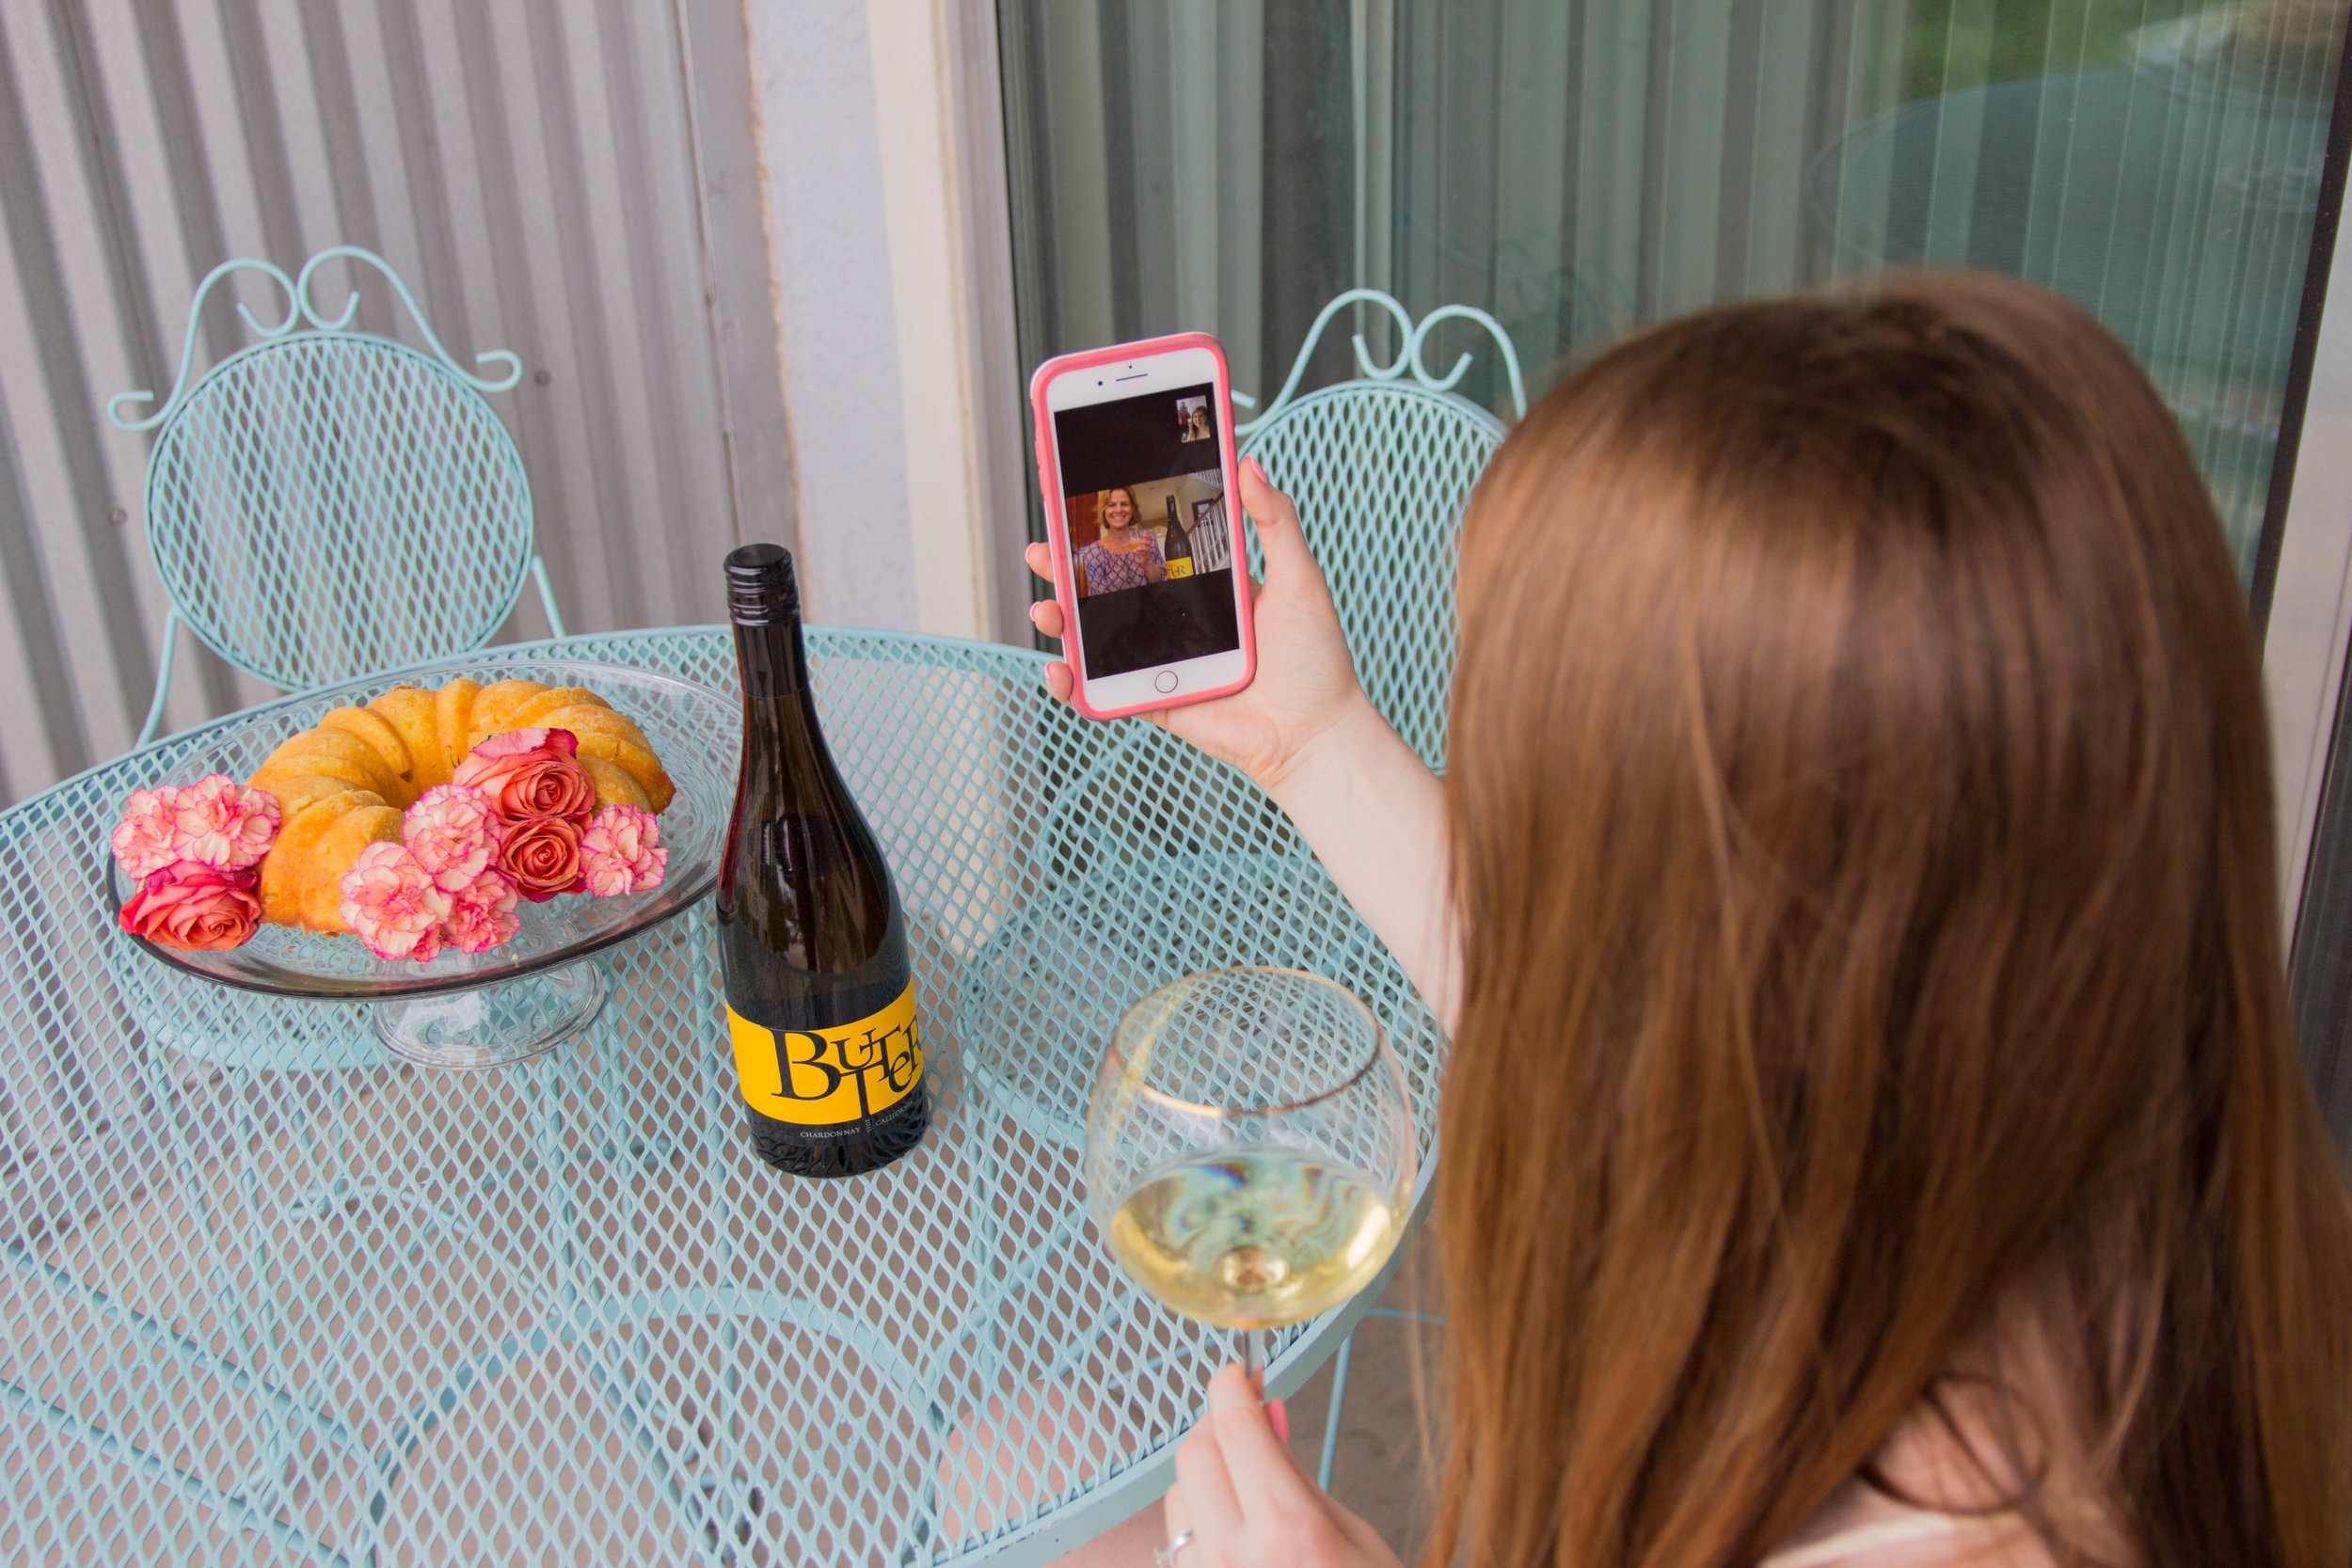 JaM Cellars Butter Chardonnay, Napa Wine, mother's day, cheers to mother in laws, bed bath and beyond tall wine glasses, lemon pound cake, the perfect mother in law gift, otterbox